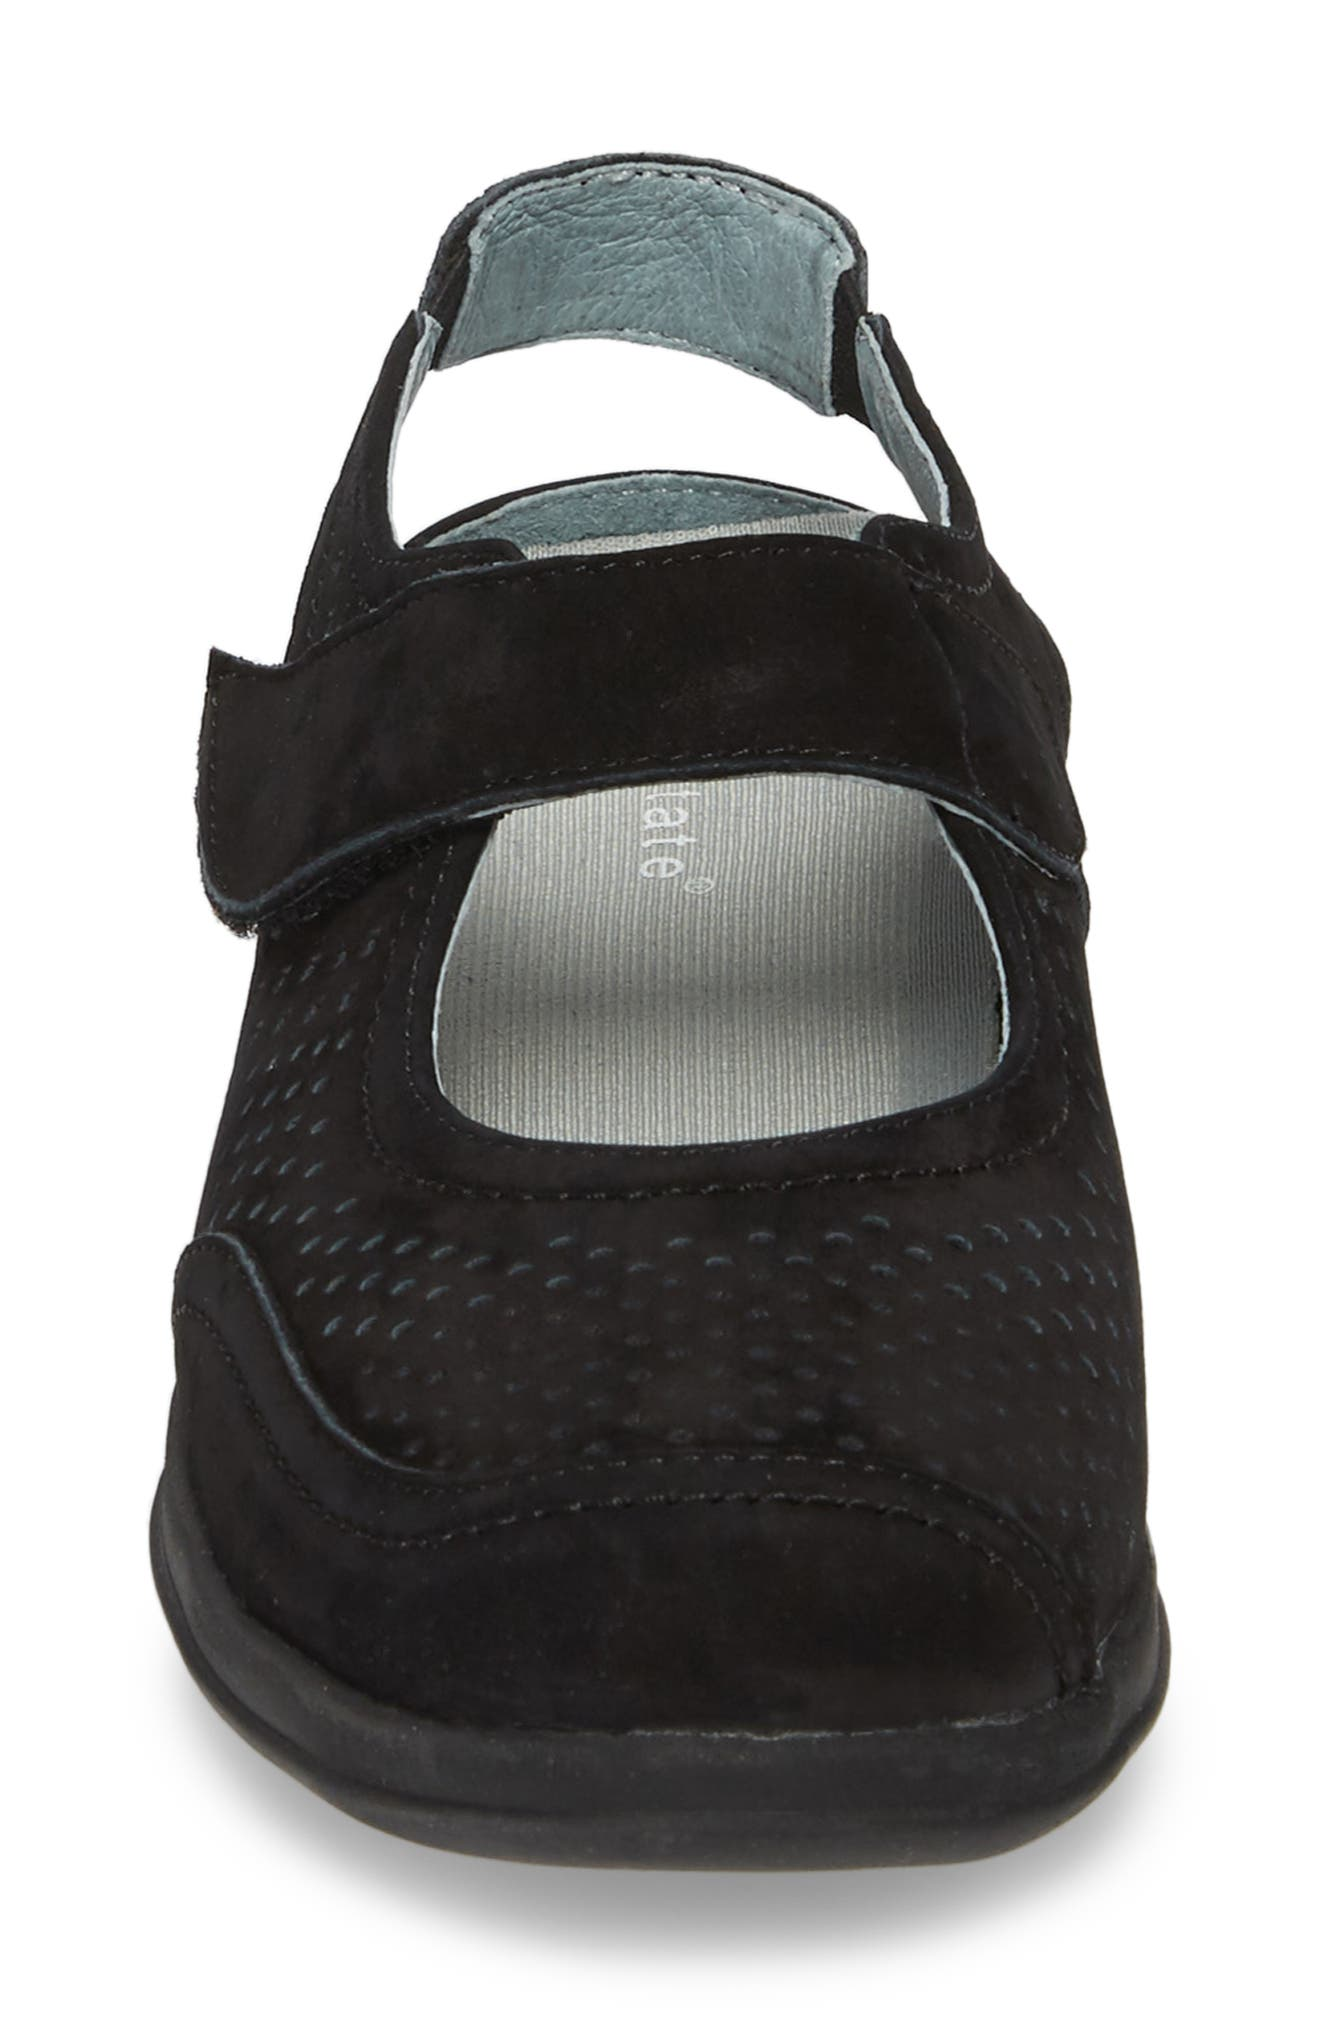 DAVID TATE, Clever Slingback Sneaker, Alternate thumbnail 4, color, BLACK NUBUCK